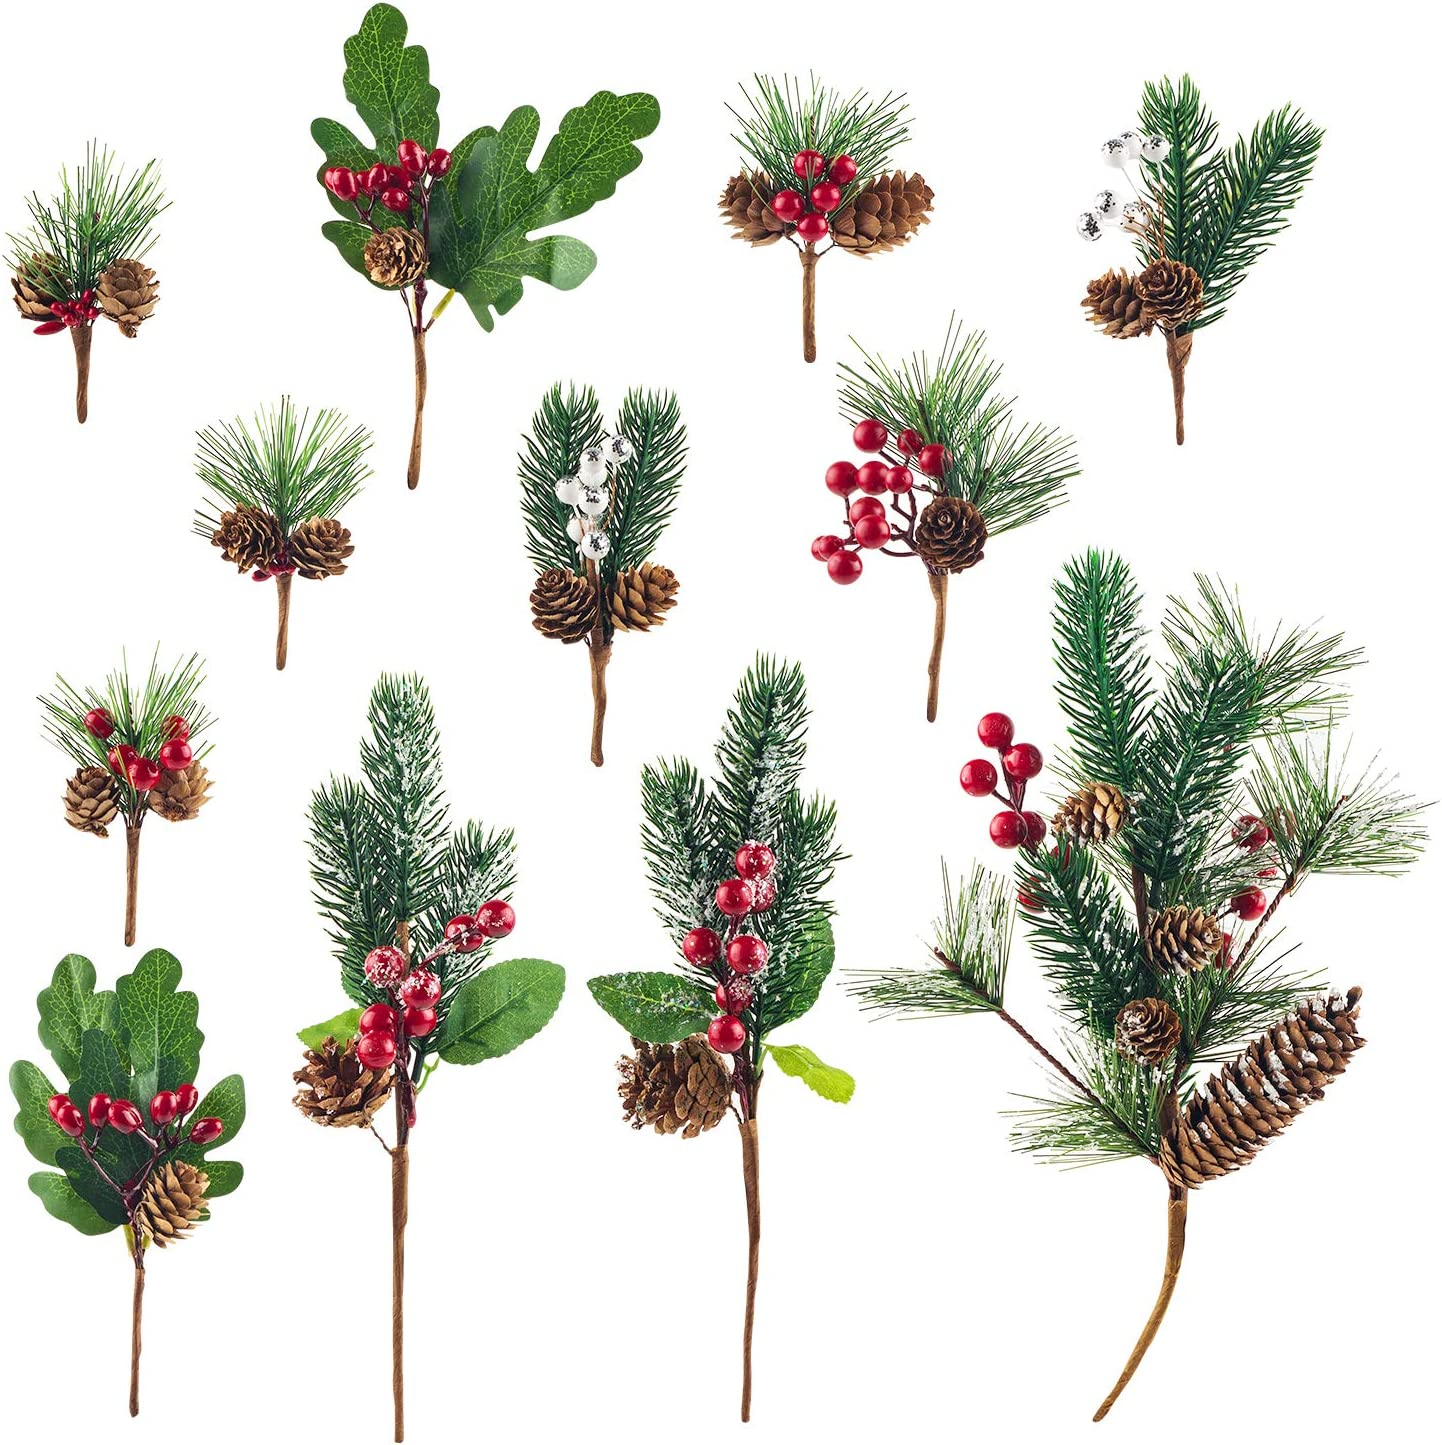 12Pack Artificial Christmas Picks Assorted Red Berry Picks Stems Faux Pine Picks Spray with Pinecones Apples Holly Leaves for Christmas Floral Arrangement Wreath Winter Holiday Season Décor